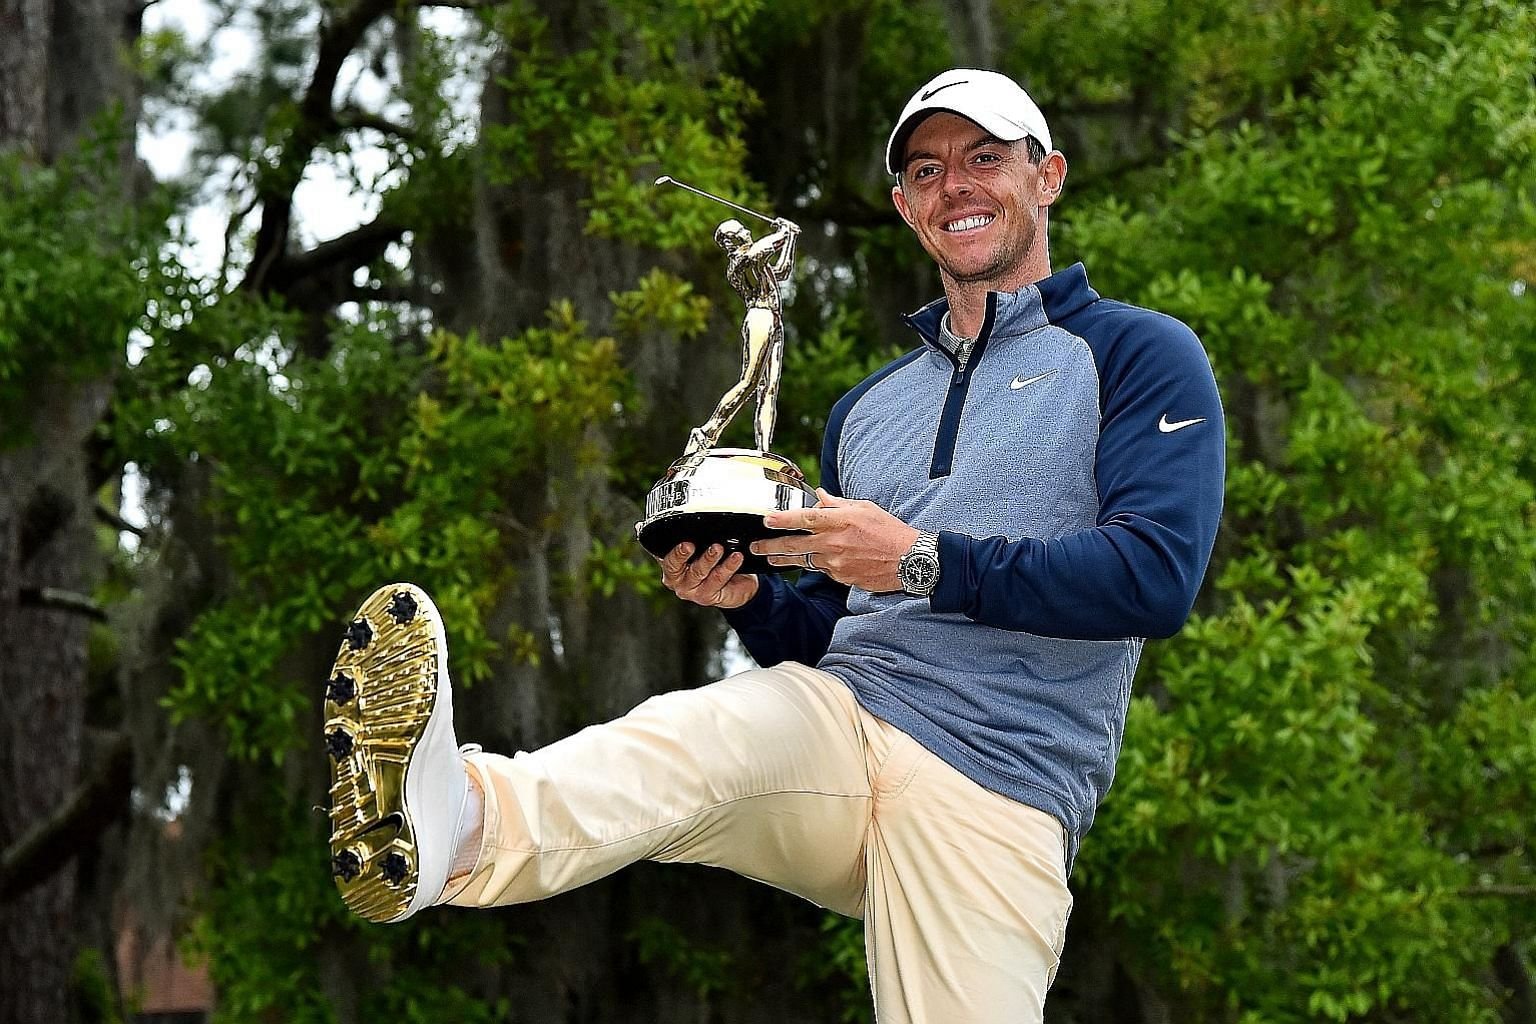 Rory McIlroy's first title of the year puts him in good stead for next month's Masters, where a win would make him the sixth man to complete a career Grand Slam and the second this century after Tiger Woods.